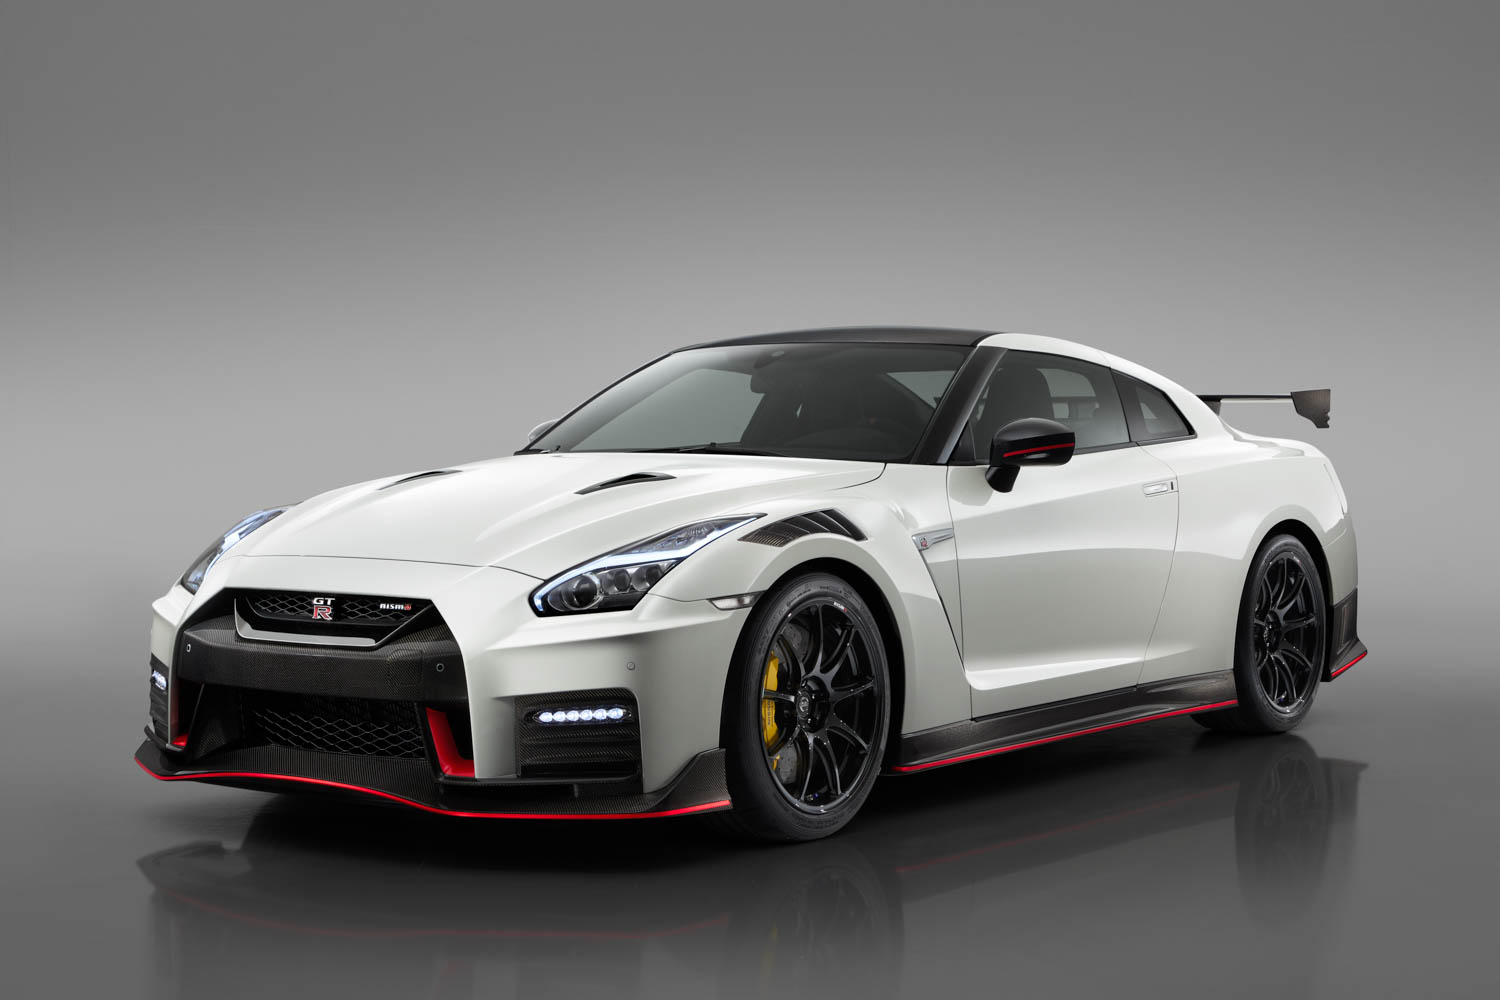 Nissan GT-R NISMO front 3/4